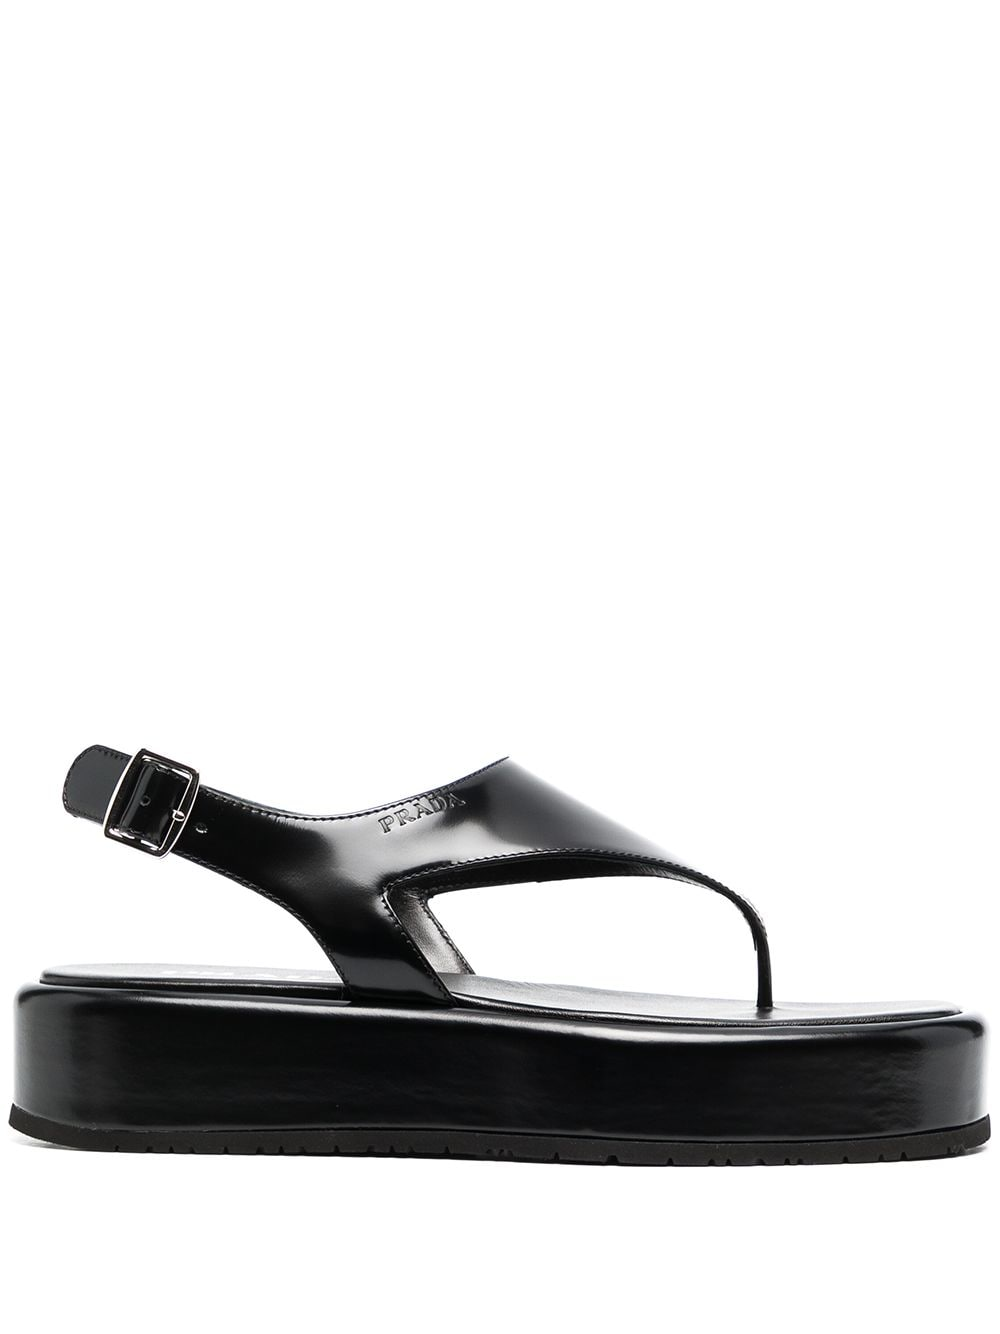 Prada platform leather sandals - Black von Prada